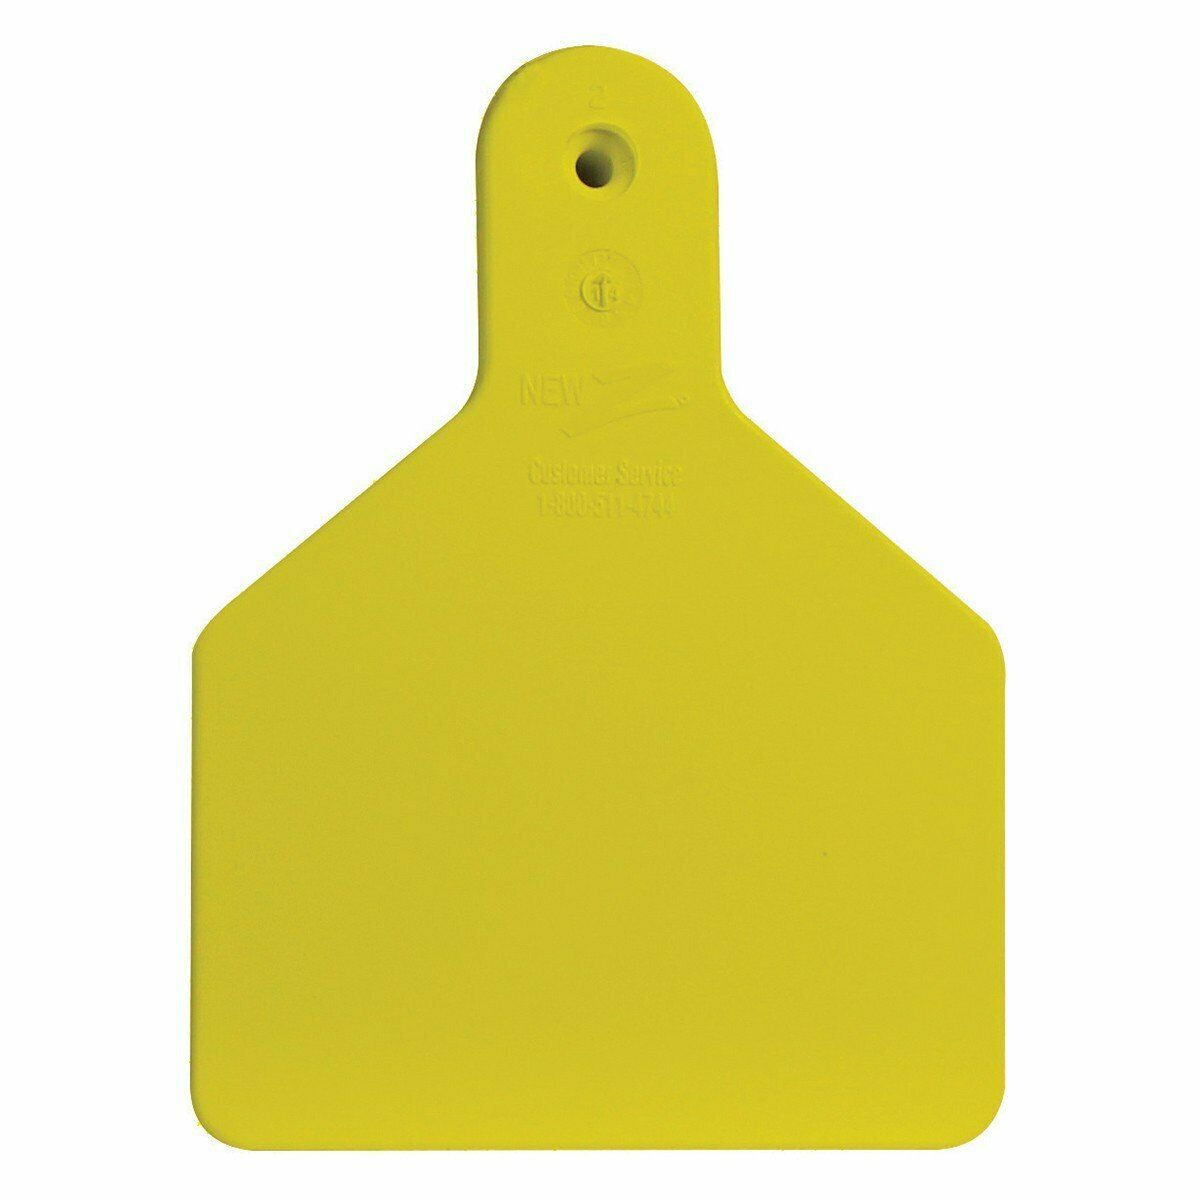 Z-TAG FEEDLOT ONE PIECE Cattle//Cow Blank Ear Tags WHITE 50 Count